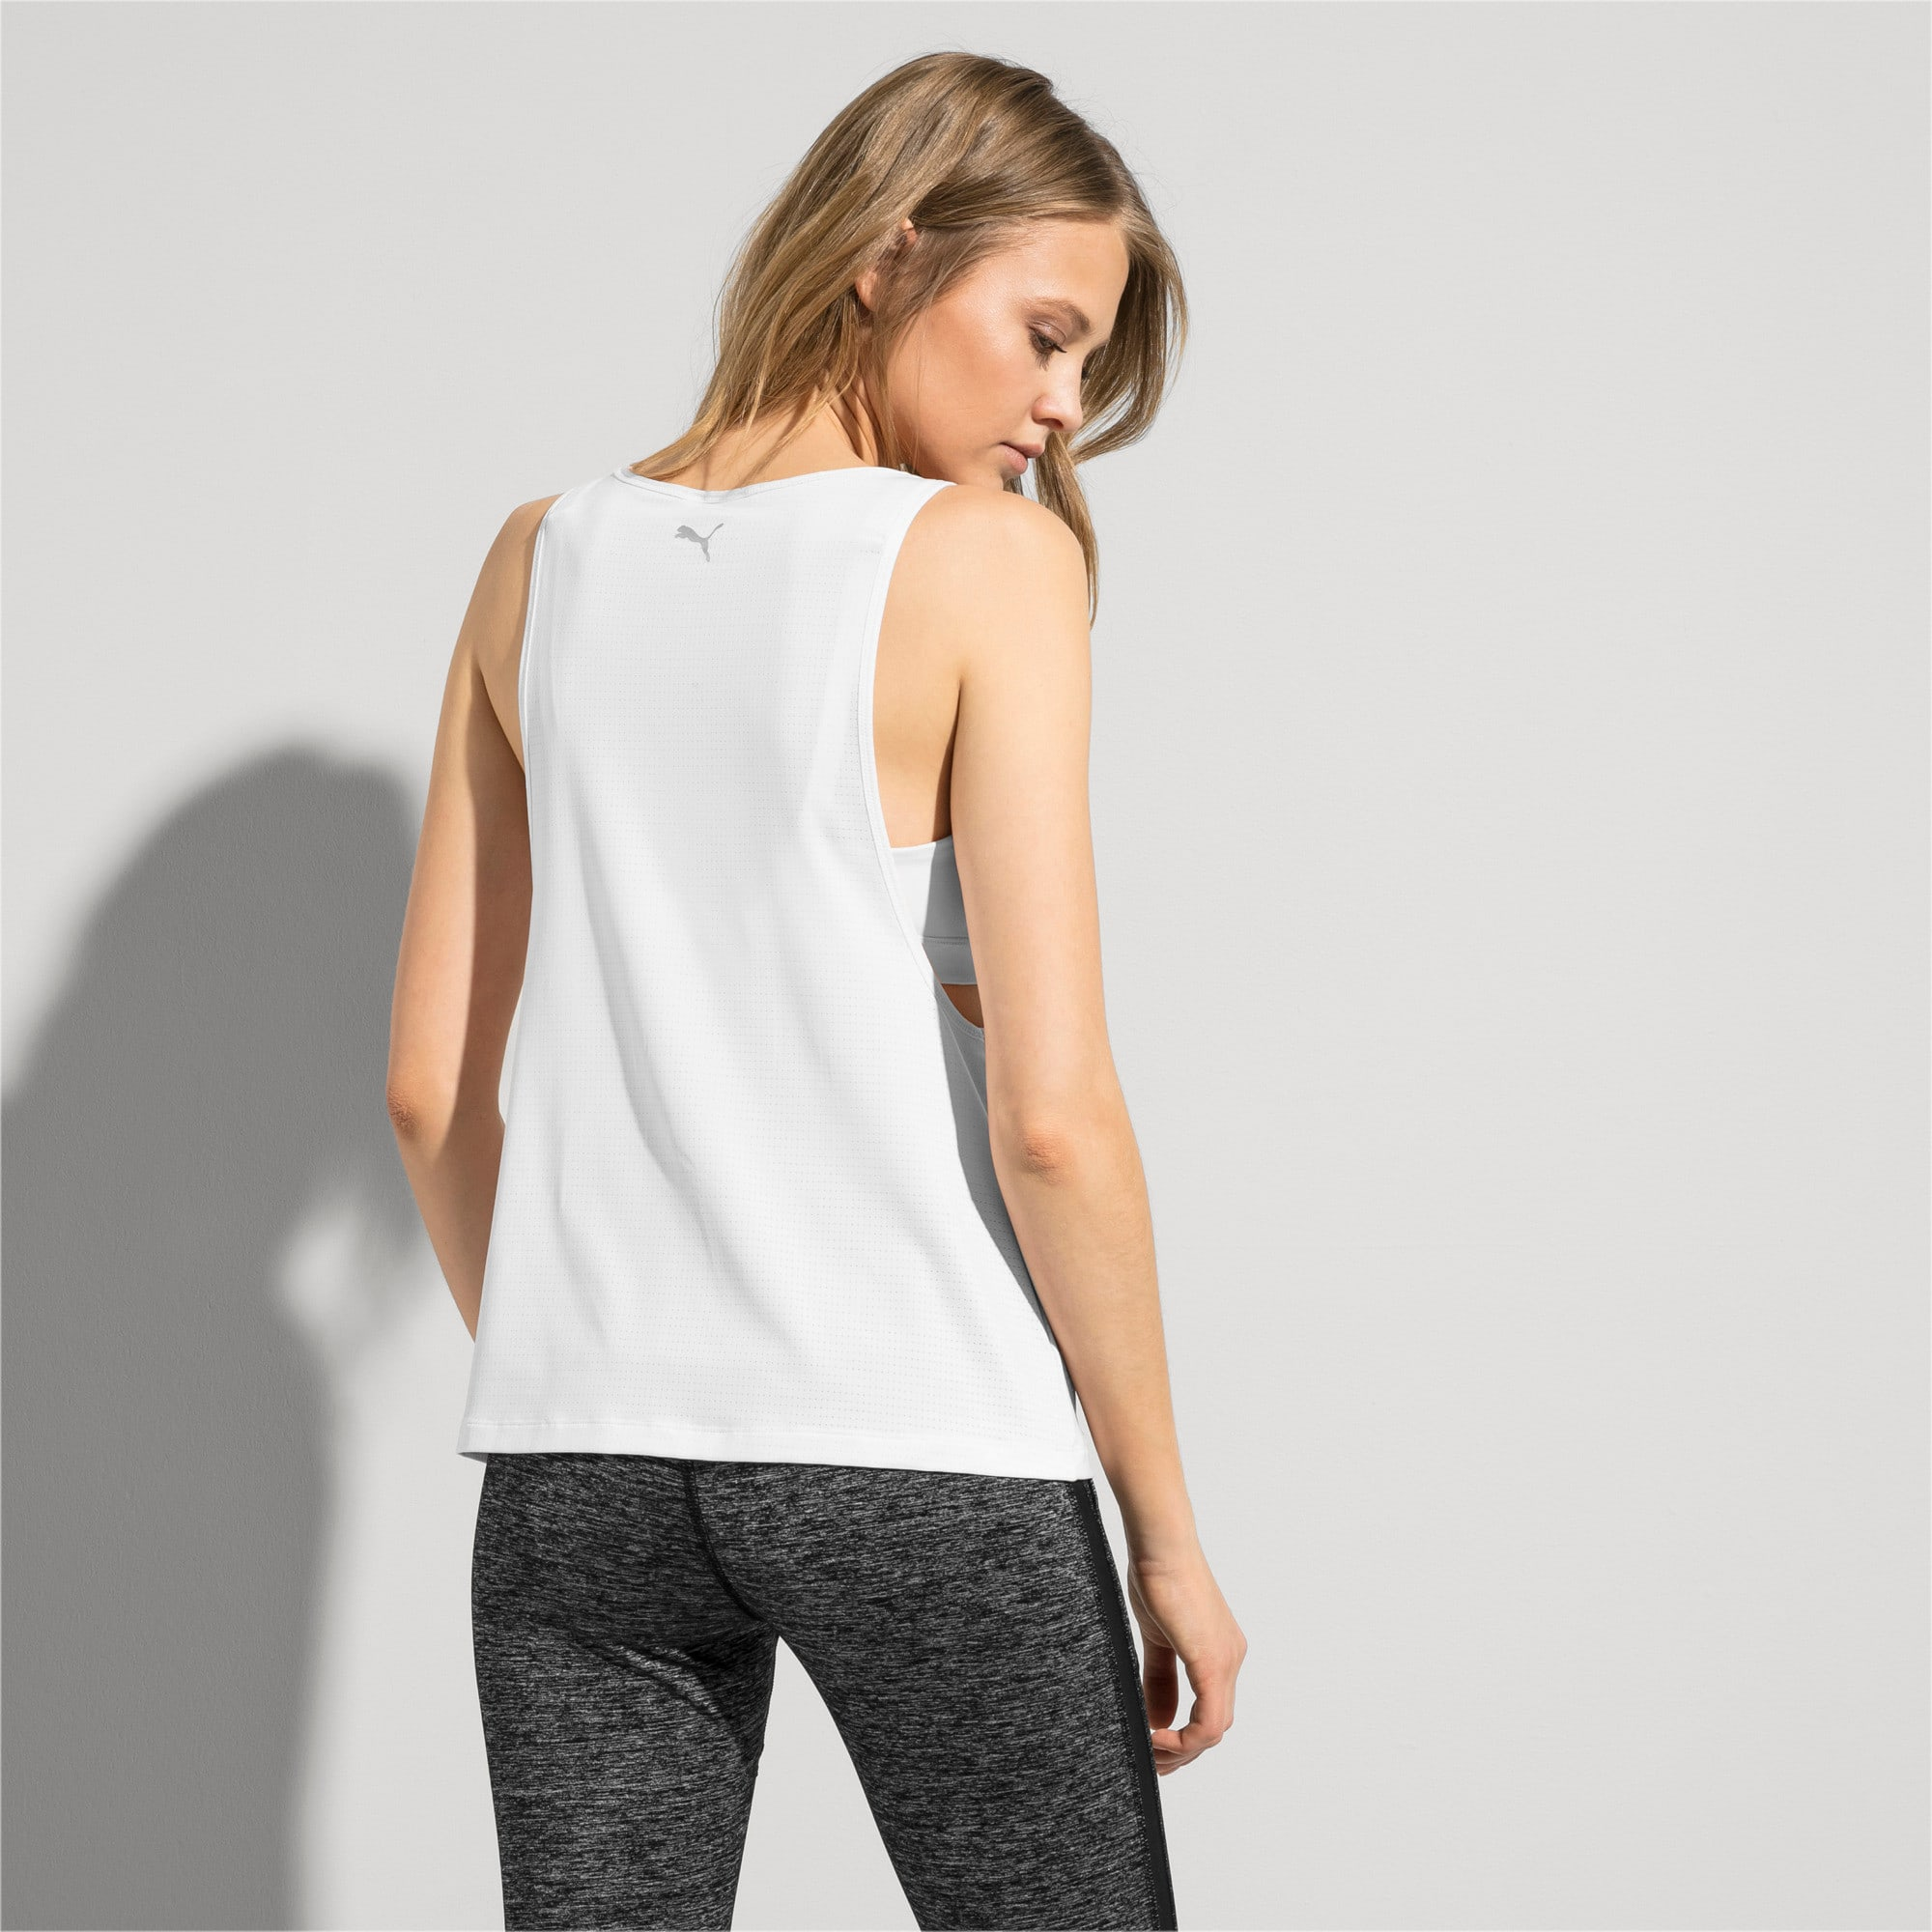 Thumbnail 3 of Spark Women's Tank Top, Pearl, medium-IND